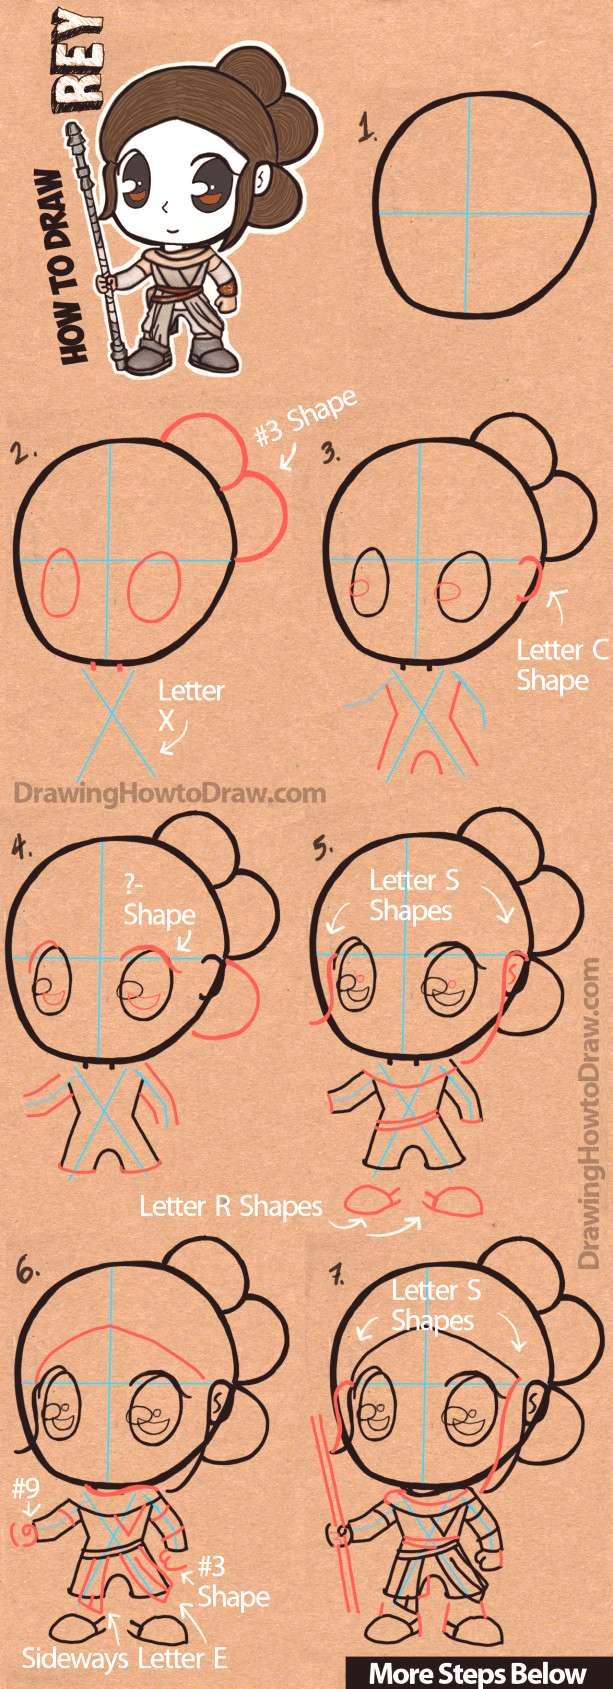 How to Draw Cartoon Chibi Rey from Star Wars The Force Awakens with Easy Step by... How to Draw Ca